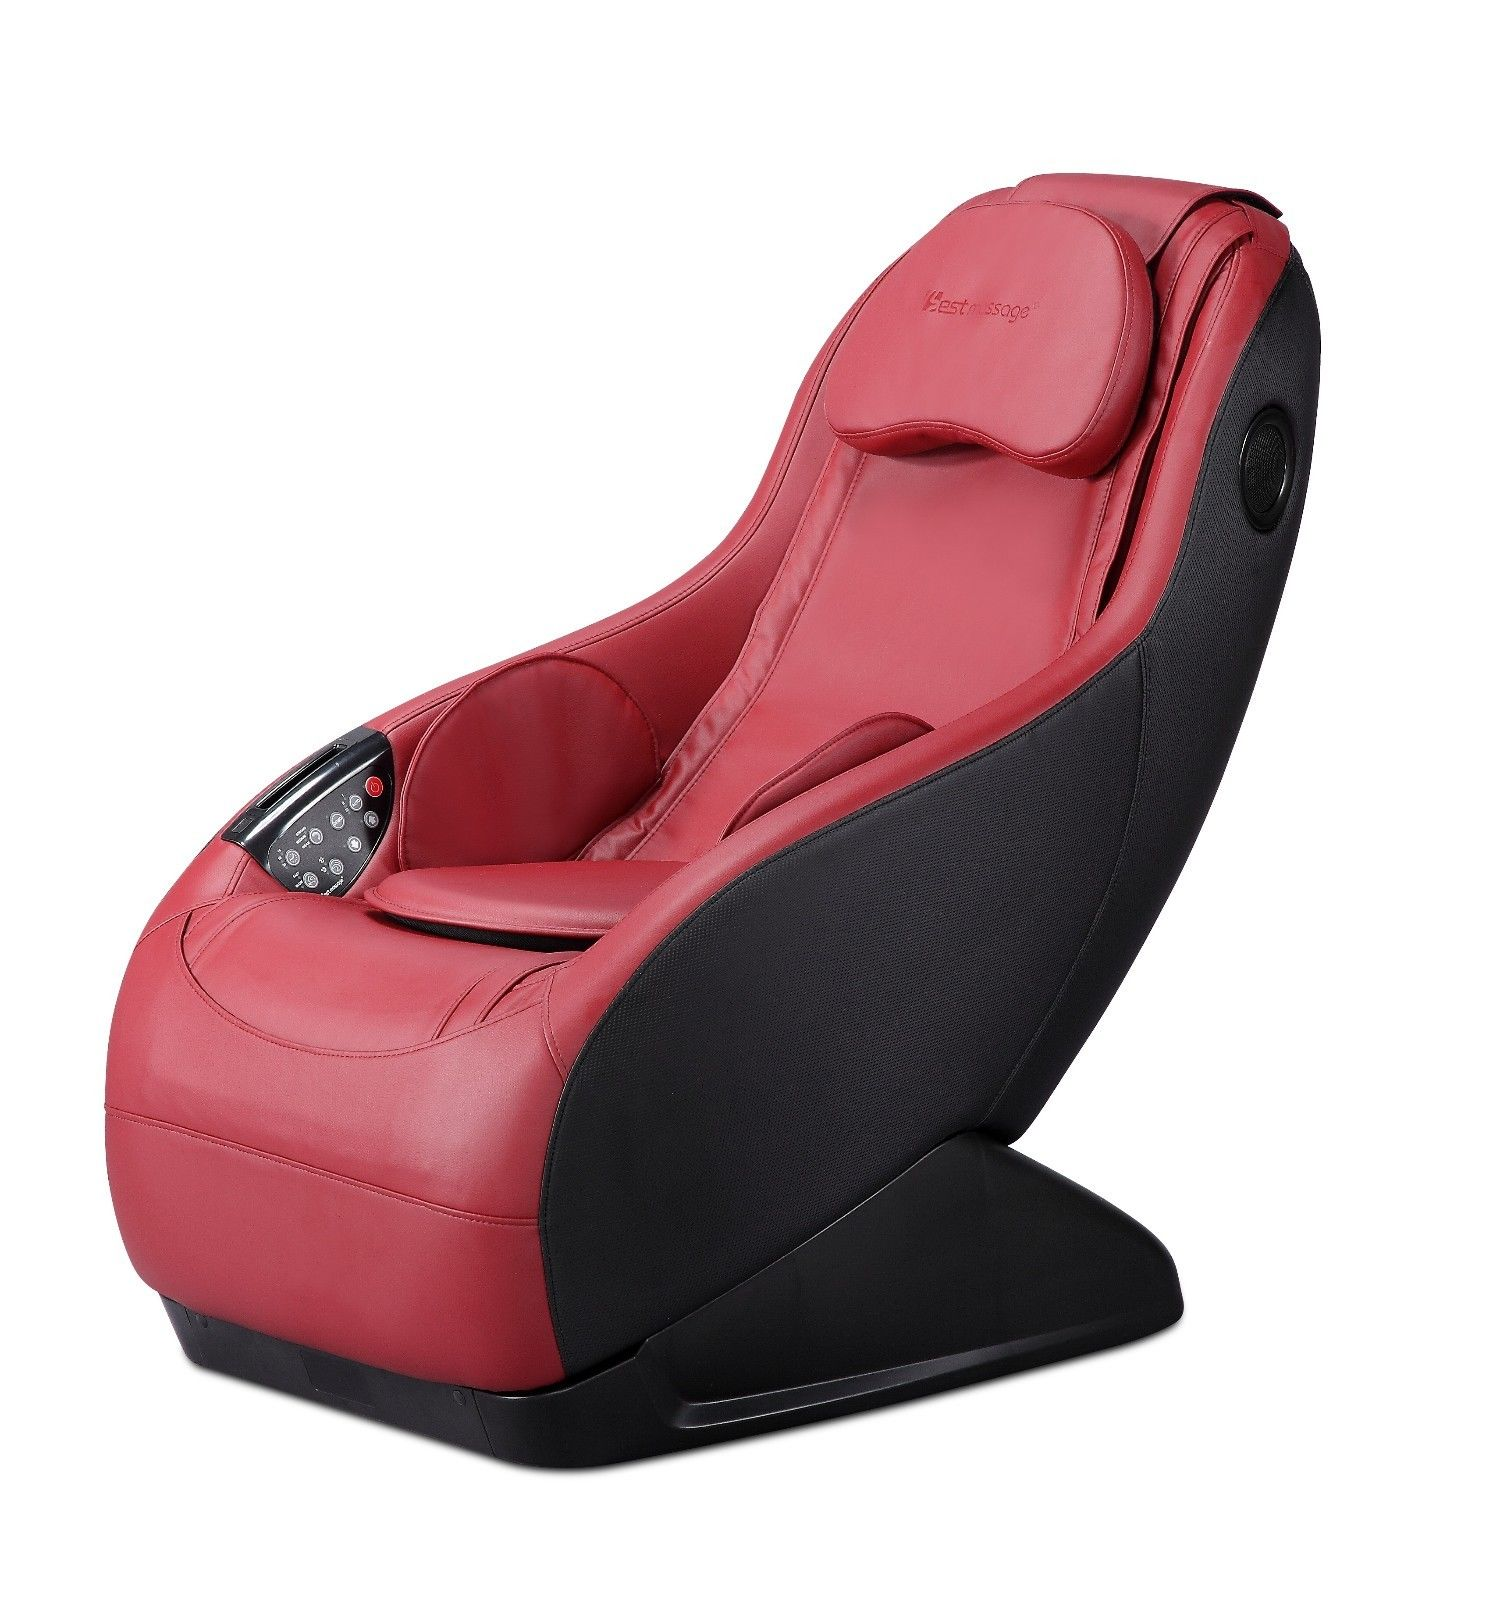 Curved Video Gaming Shiatsu Massage Chair Wireless Bluetooth Audio Long Rail